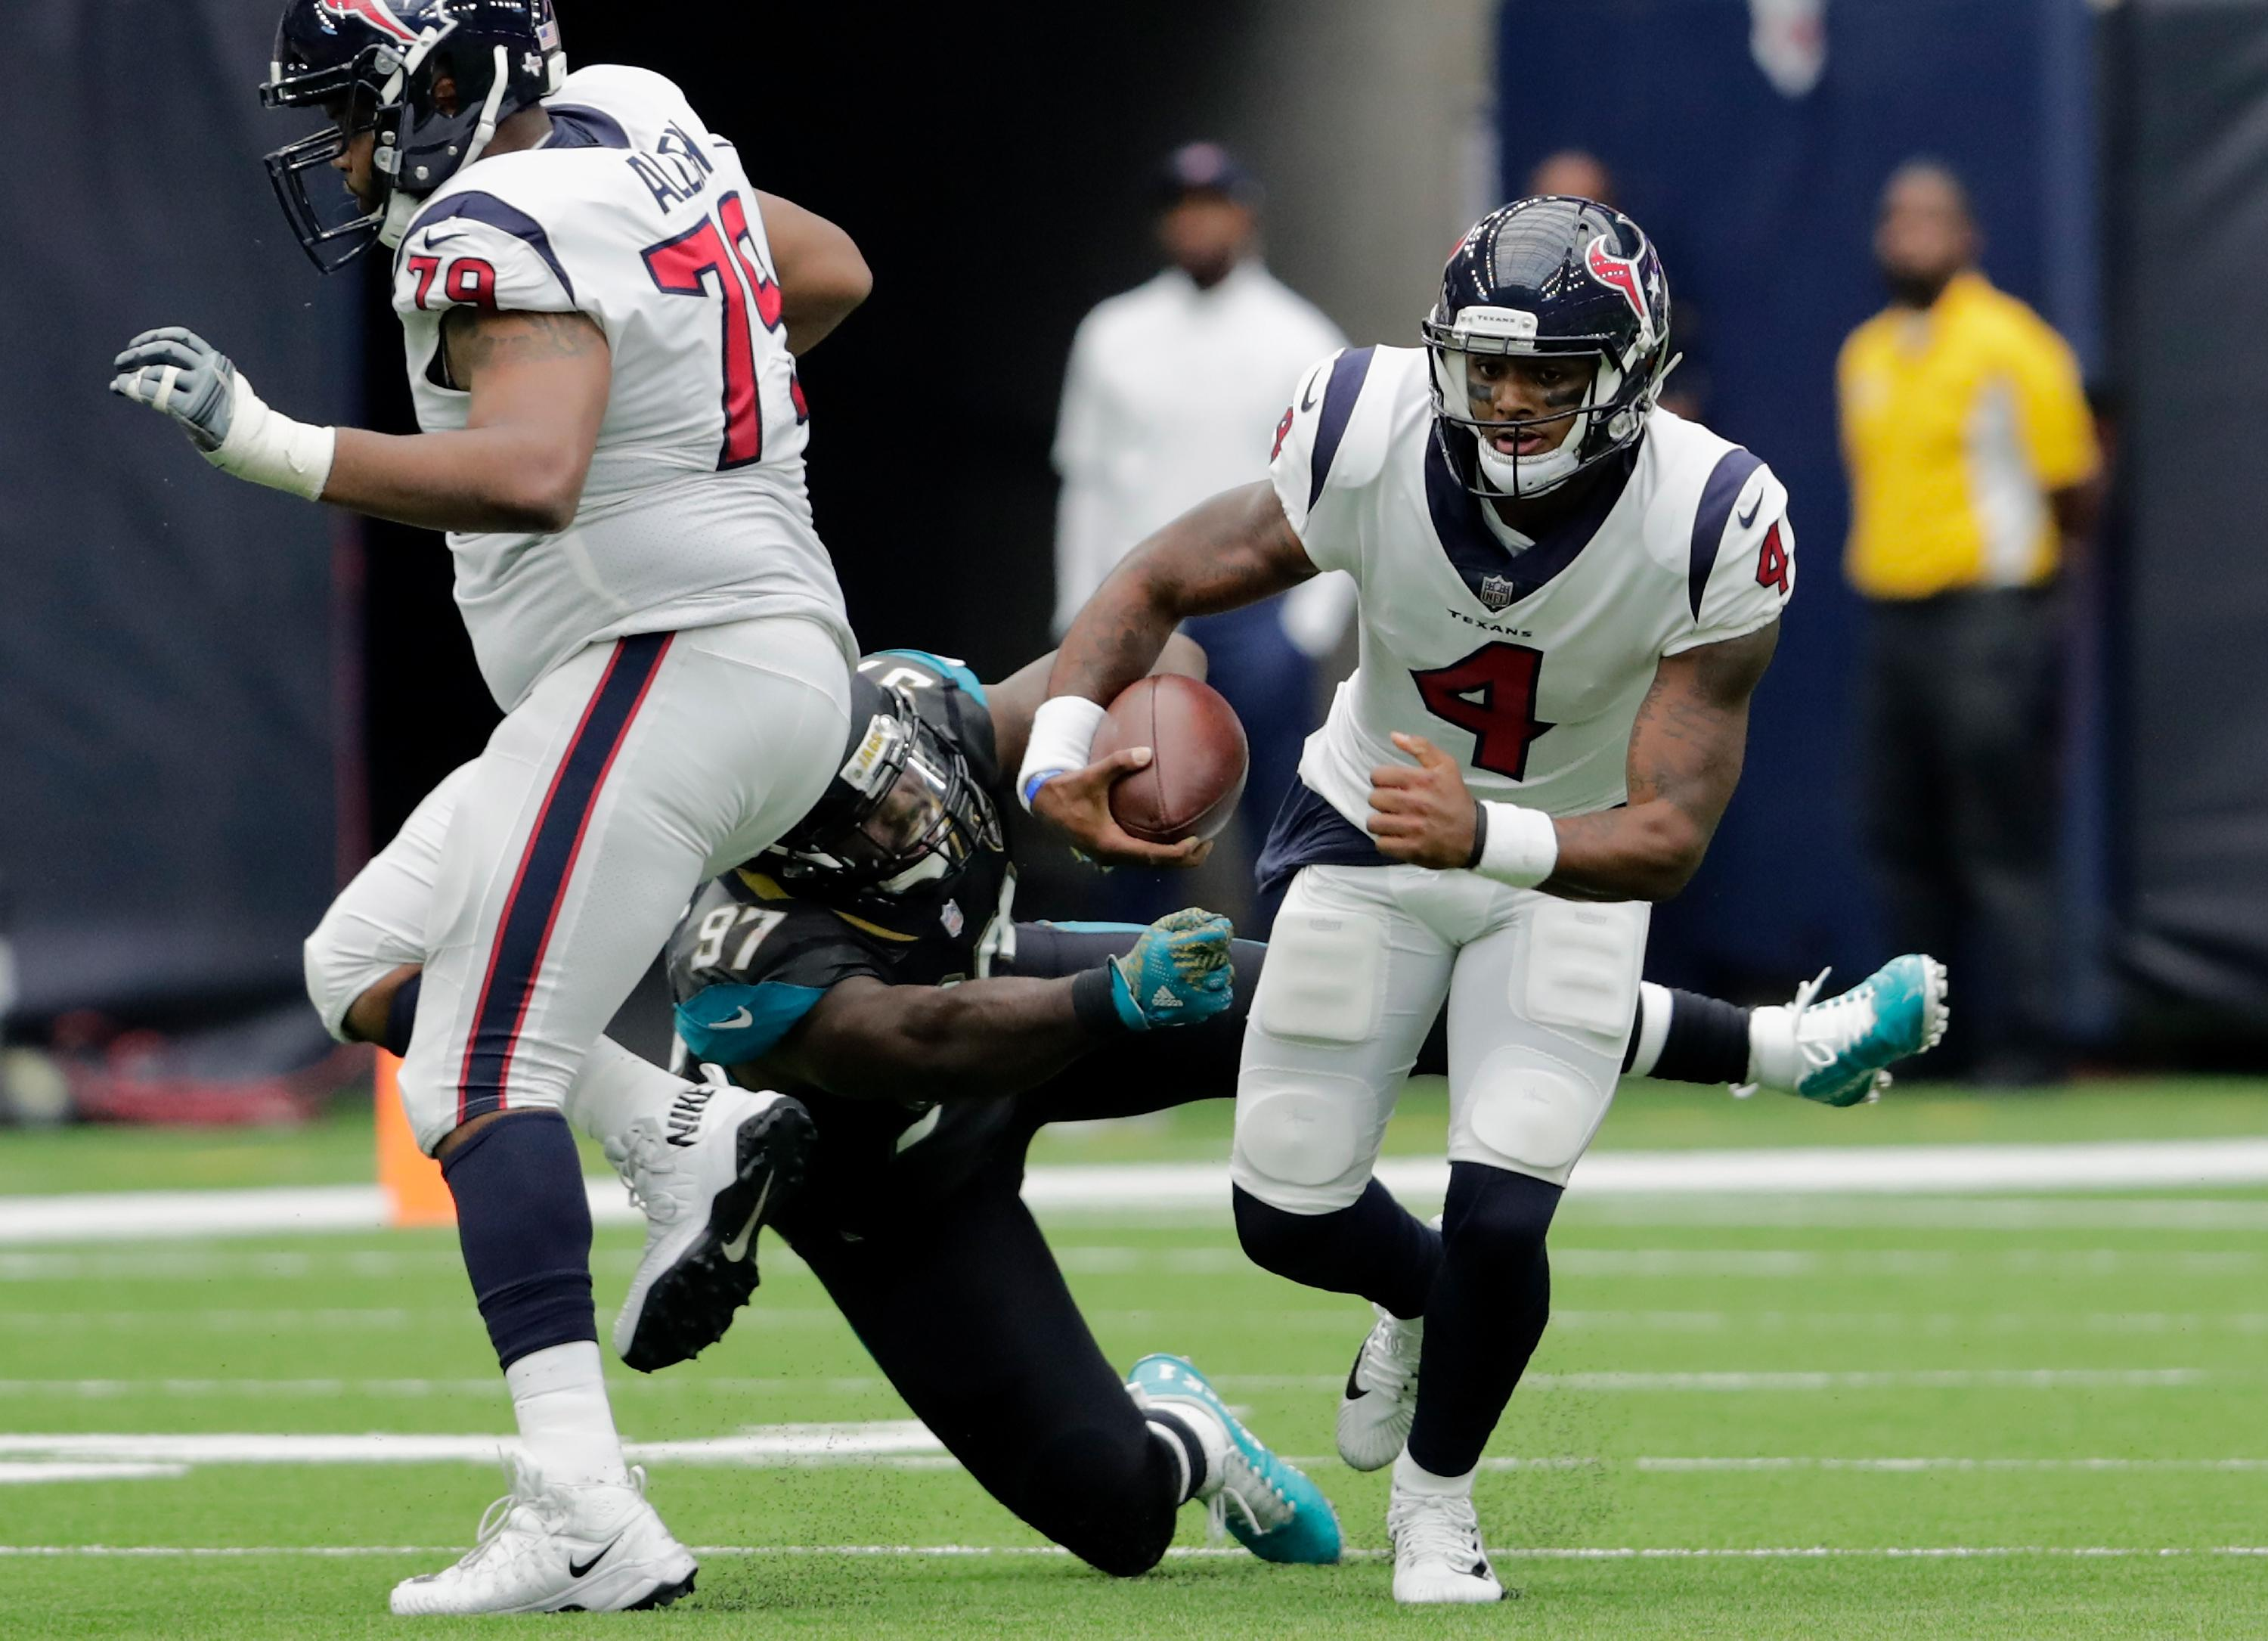 Deshaun Watson dealing with an injury